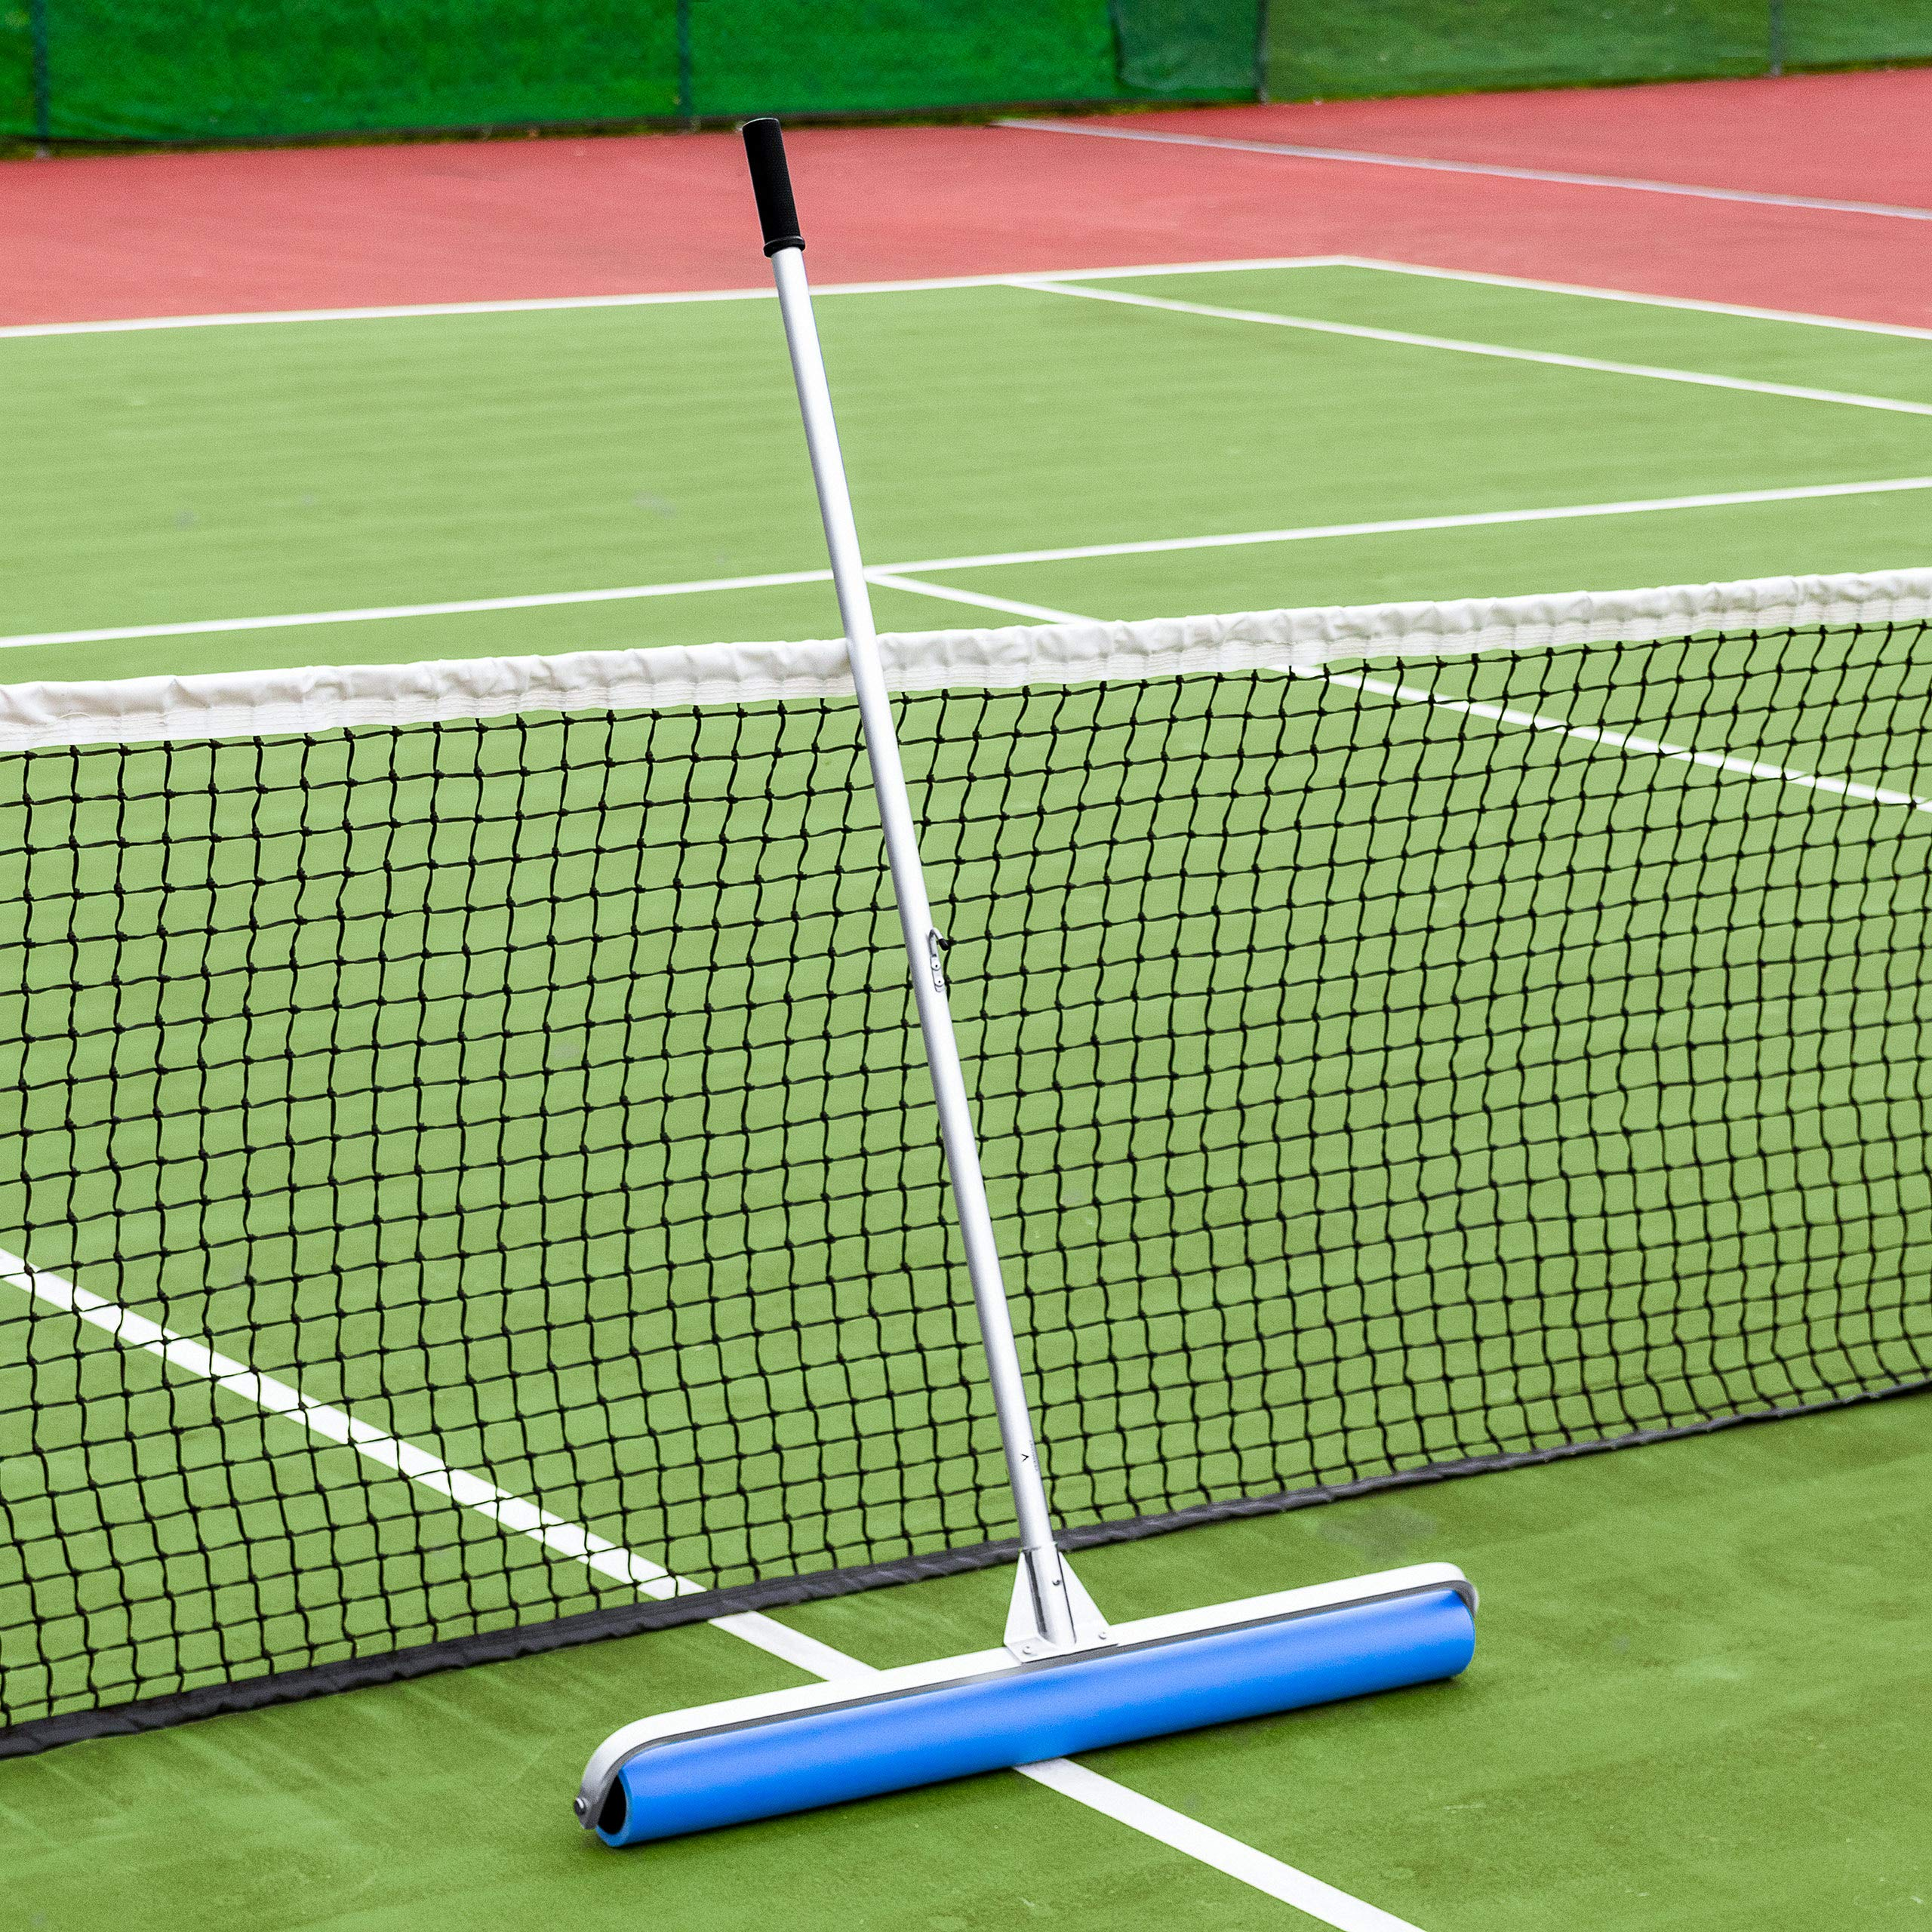 Vermont Rol-Dri Tennis Court Roller Squeegee [Blue PVA] | Dry Tennis Courts in Minutes (36in Sweep)